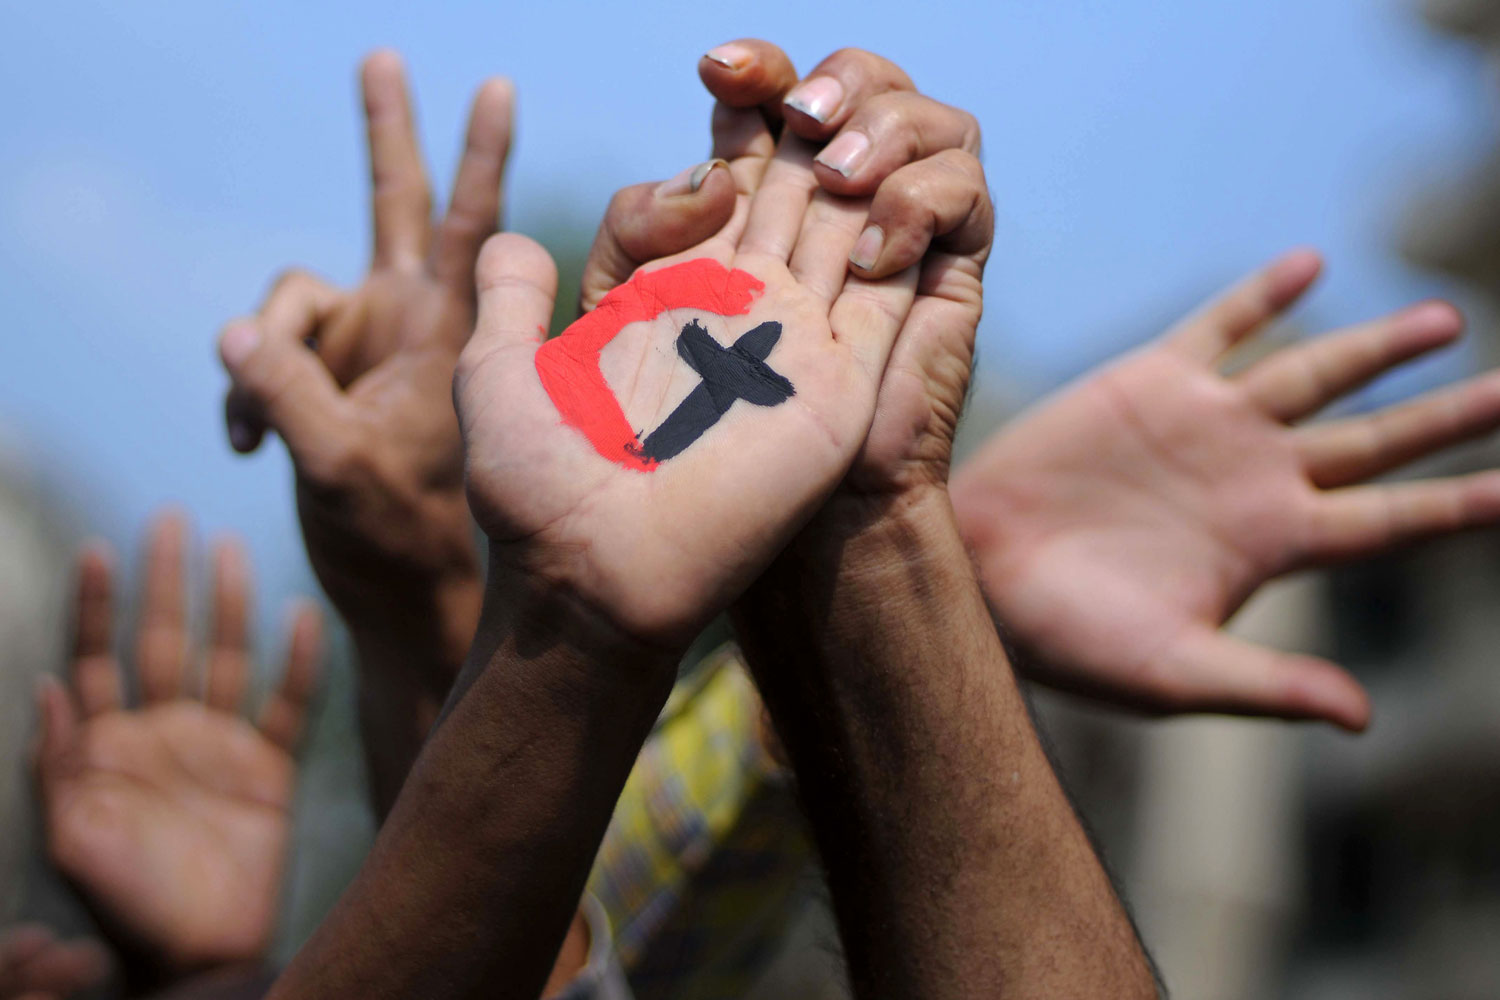 October 14, 2011. A cross and a crescent are painted on the palm of an Egyptian demonstrator holding the hand of a fellow protester during a rally in support of national unity in Cairo's Tahrir Square, days after 25 people, mostly Coptic Christians, were killed in weekend clashes with Egyptian security forces.